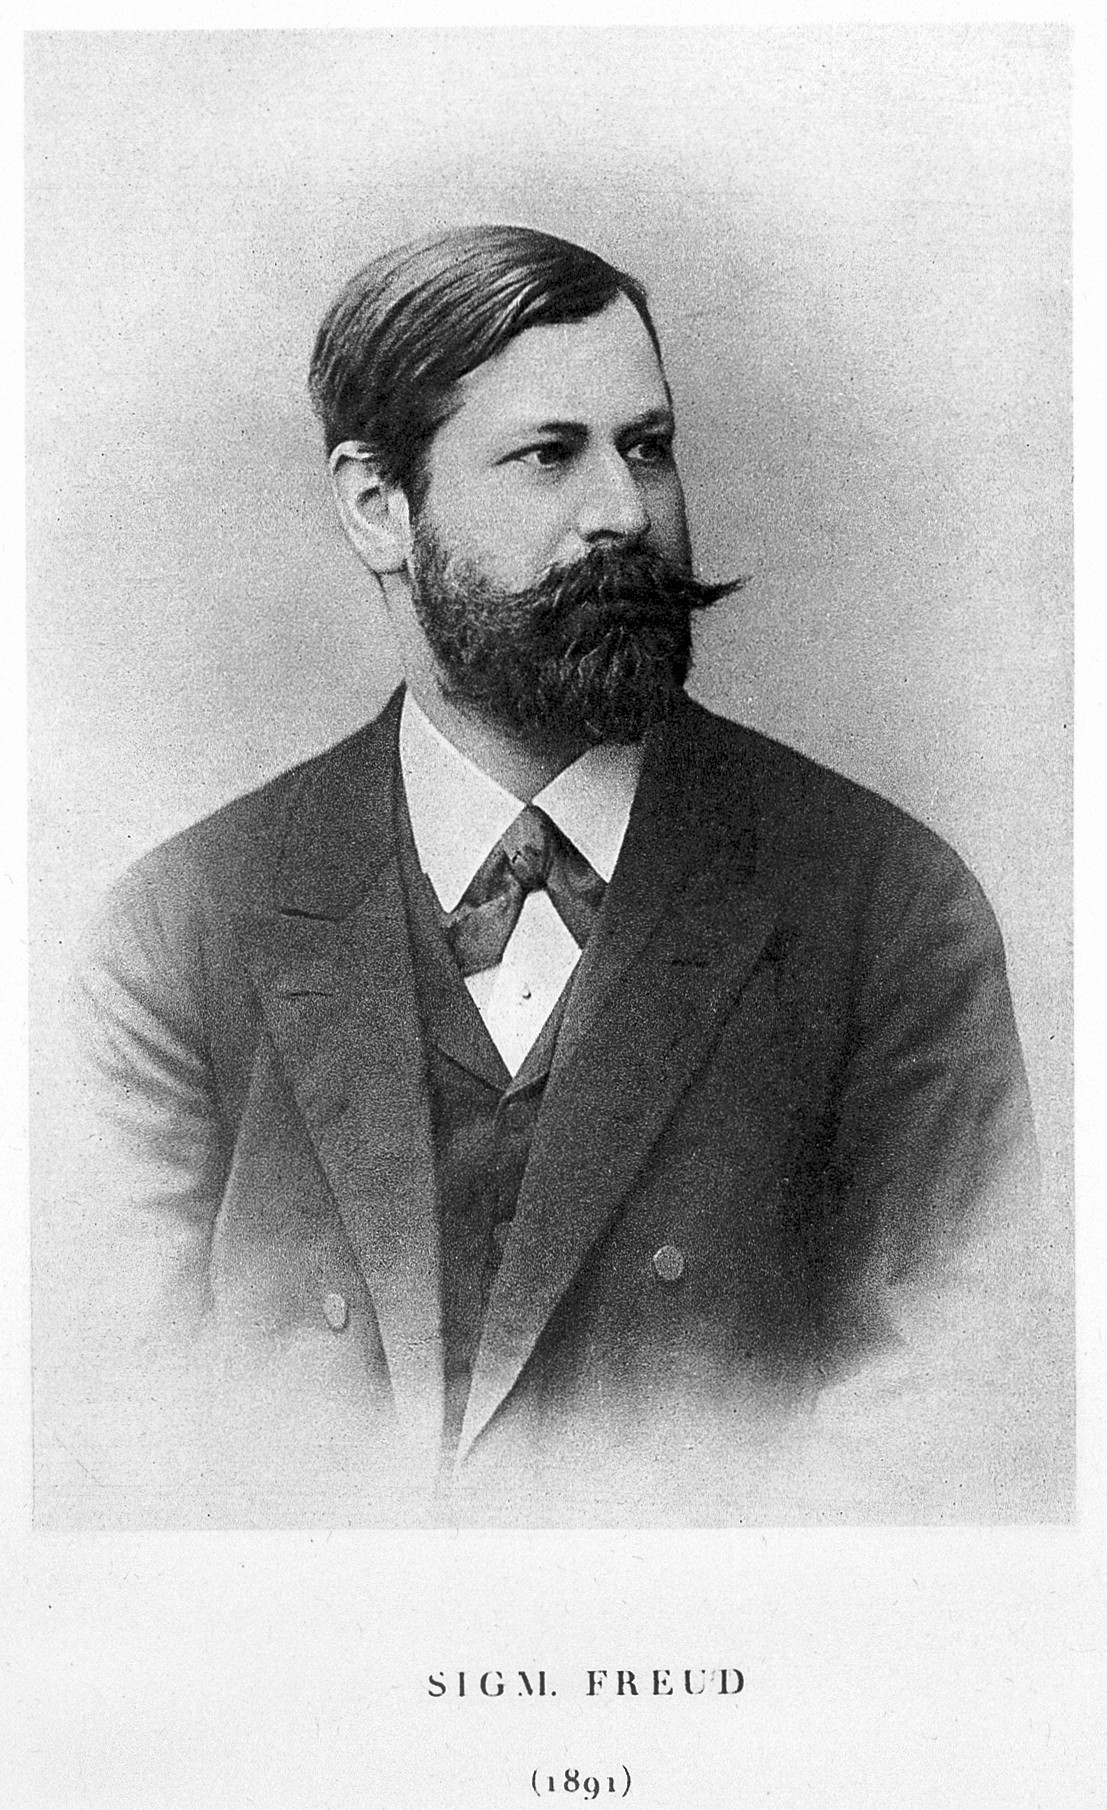 Photograph of Sigmund Freud in 1891, aged 35